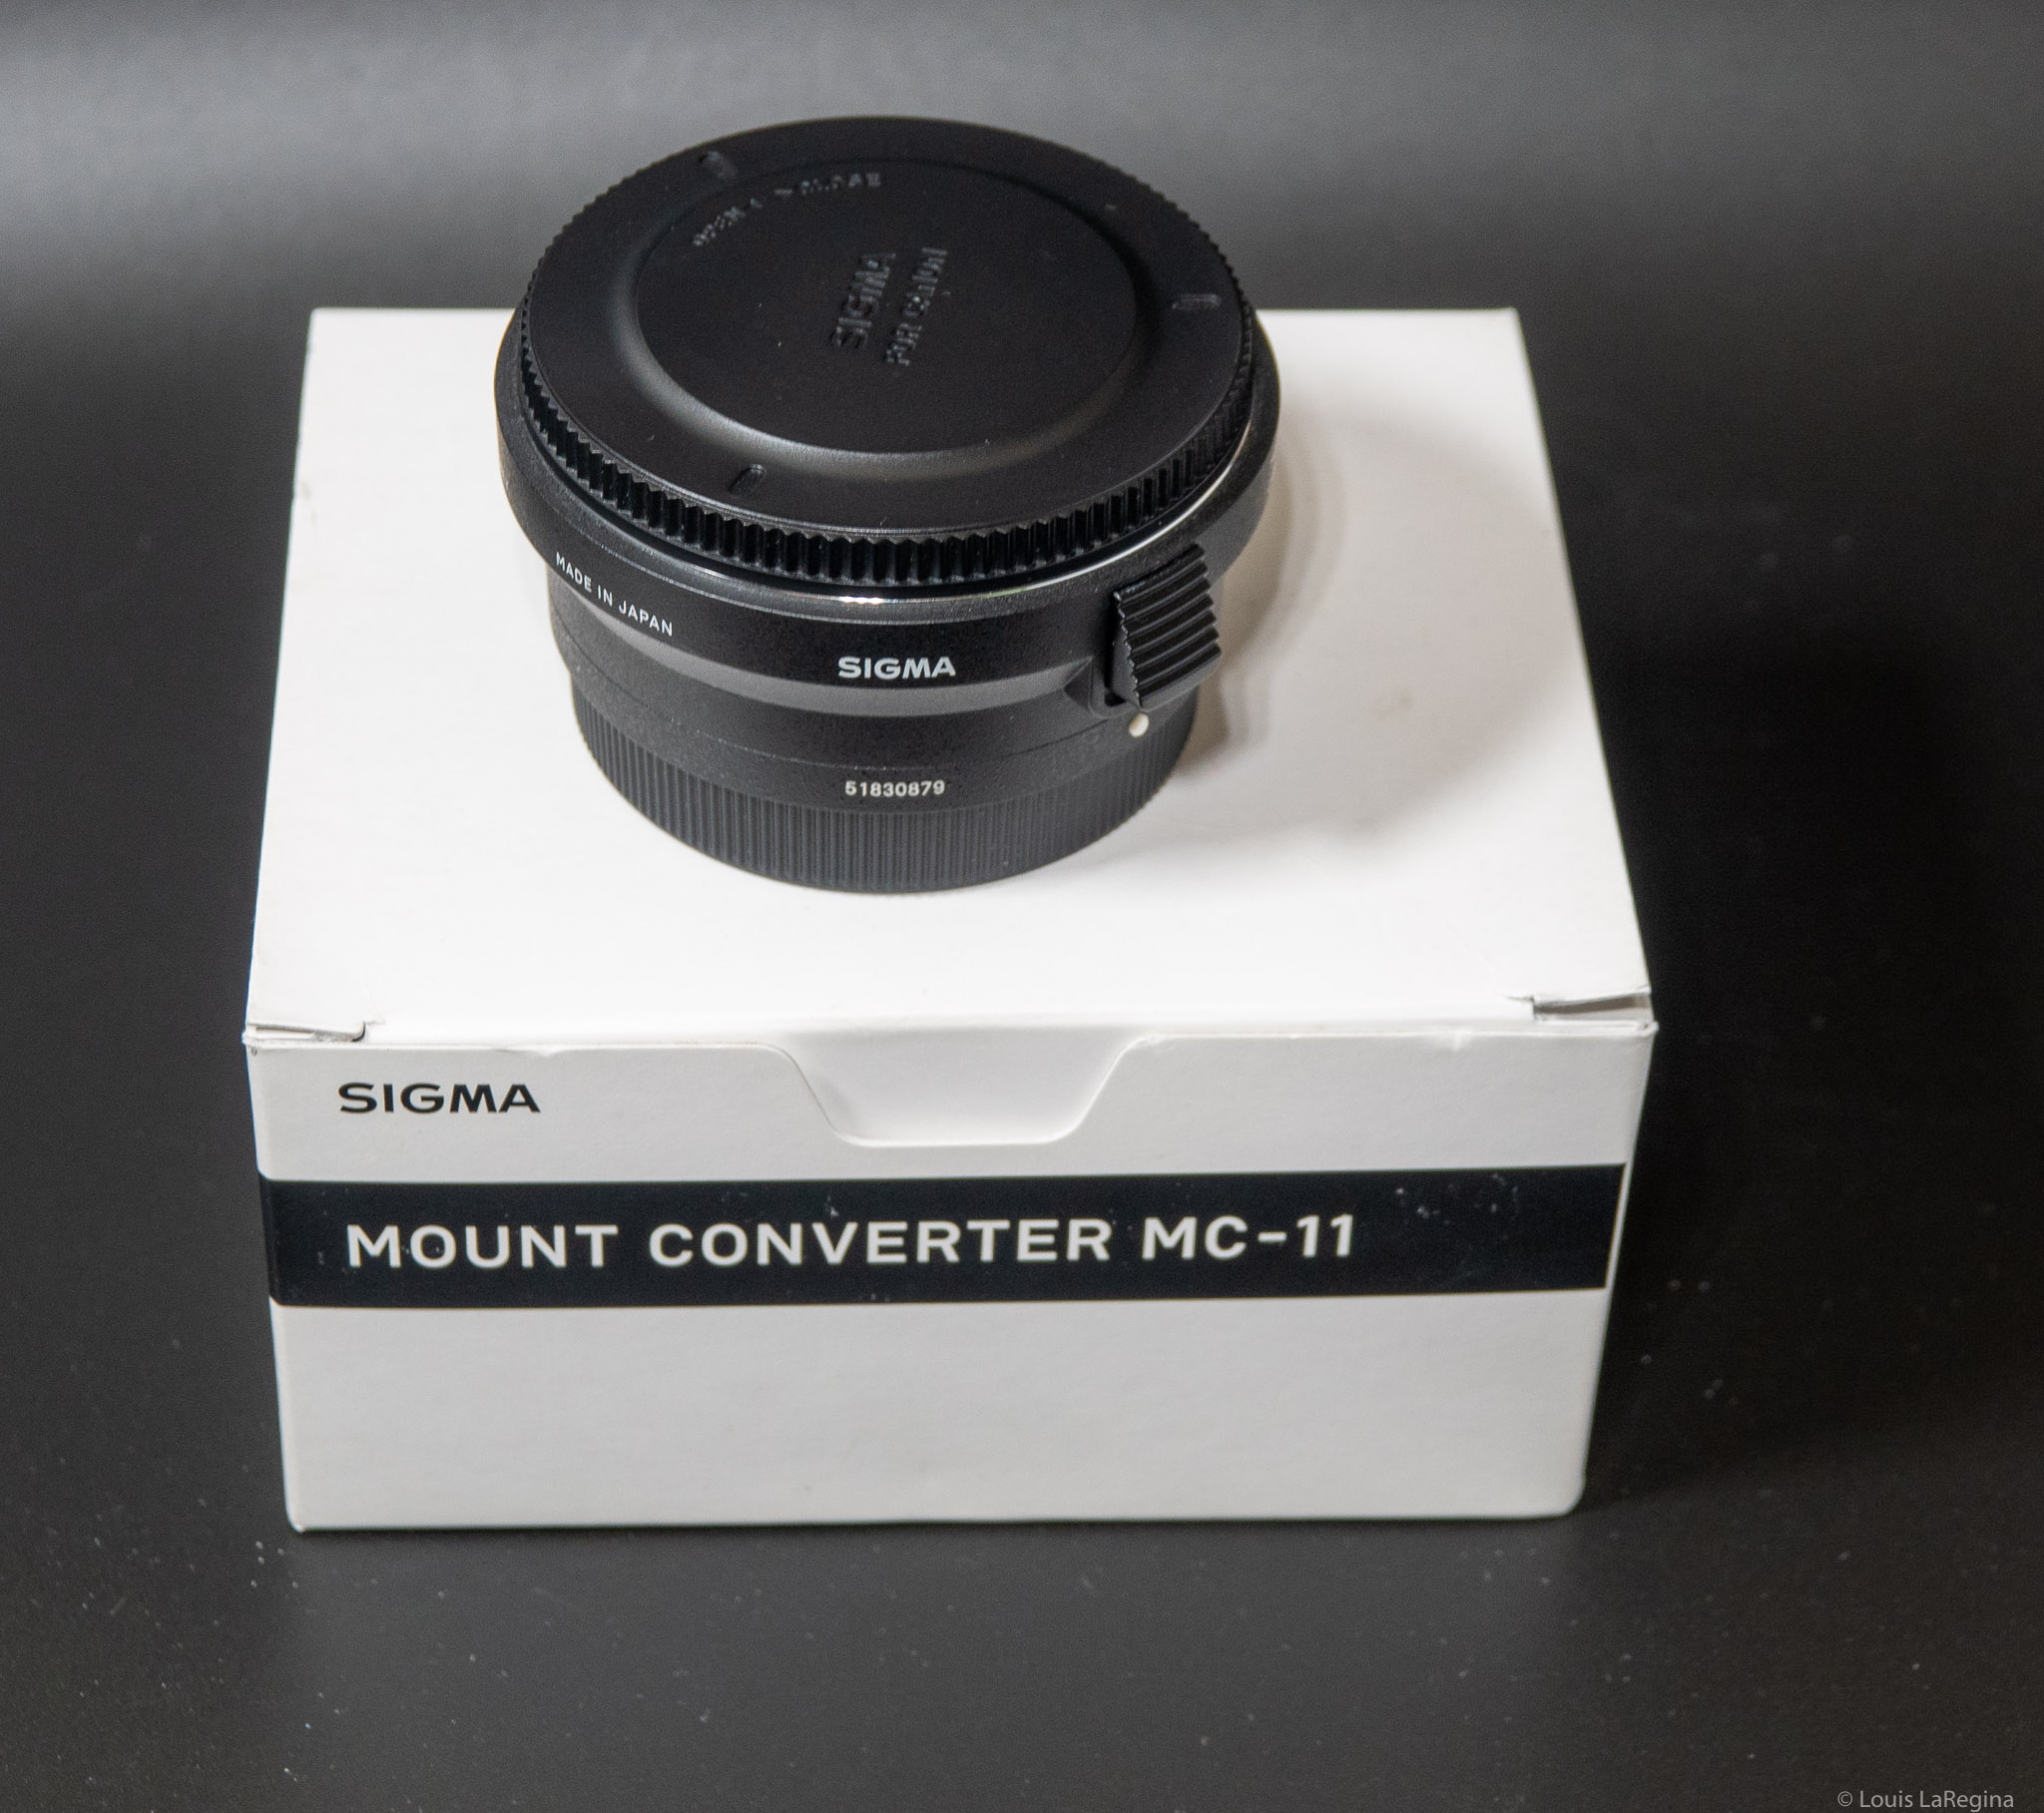 Sold: Techart Pro LM-EA7, Zeiss Vario-Sonnar 100-300, MC-11